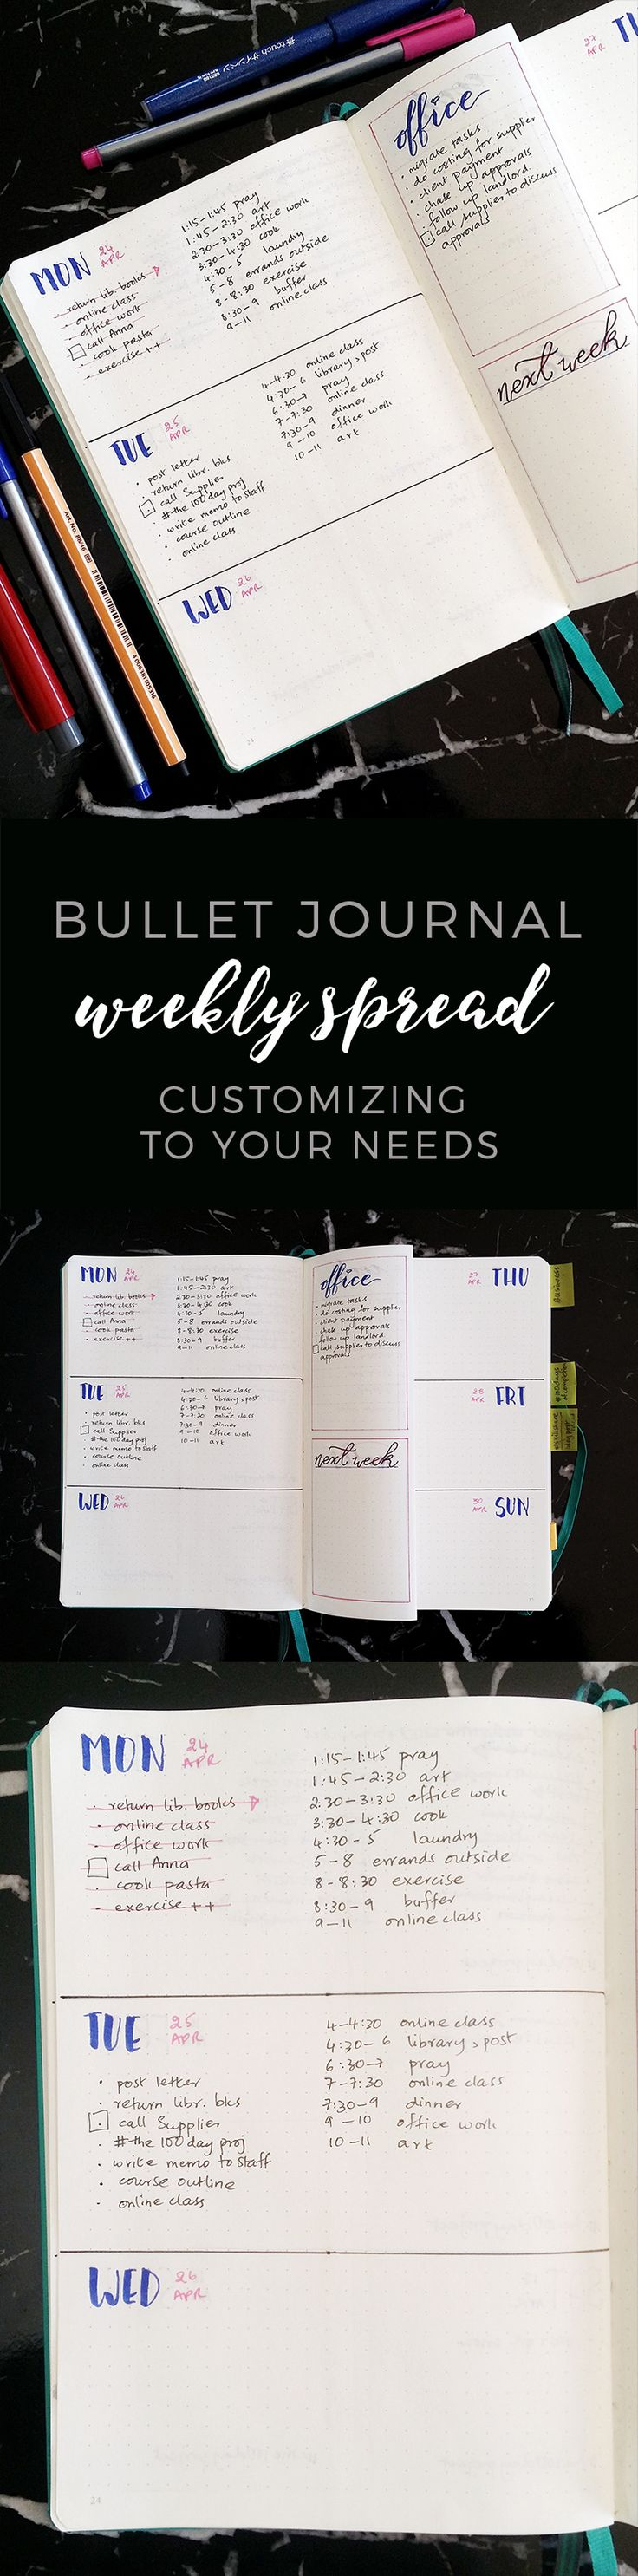 Bullet Journal Weekly Spread Setup http://productiveandpretty.com/bullet-journal-weekly-spread-setup/?utm_campaign=coschedule&utm_source=pinterest&utm_medium=Jen%20%2B%20Liz%20%7C%20Productive%20and%20Pretty&utm_content=Bullet%20Journal%20Weekly%20Spread%20Setup